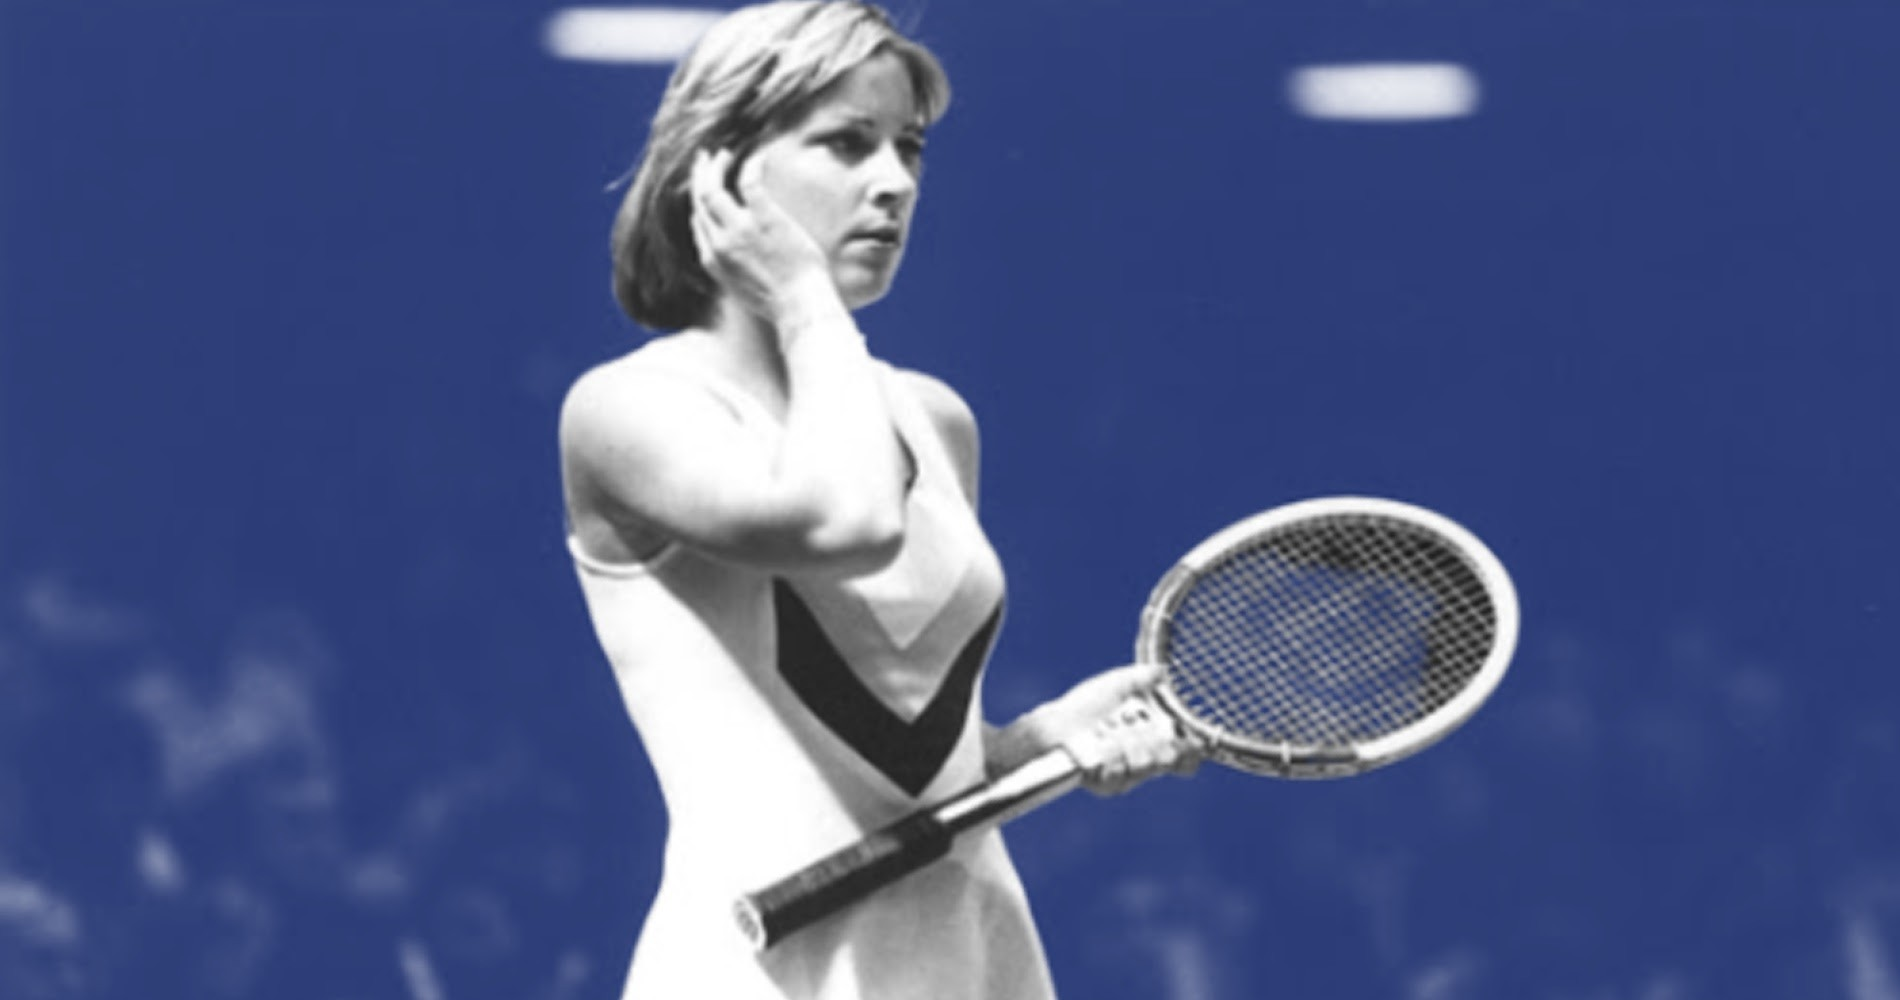 On this day in 1975 : Chris Evert won the US Open